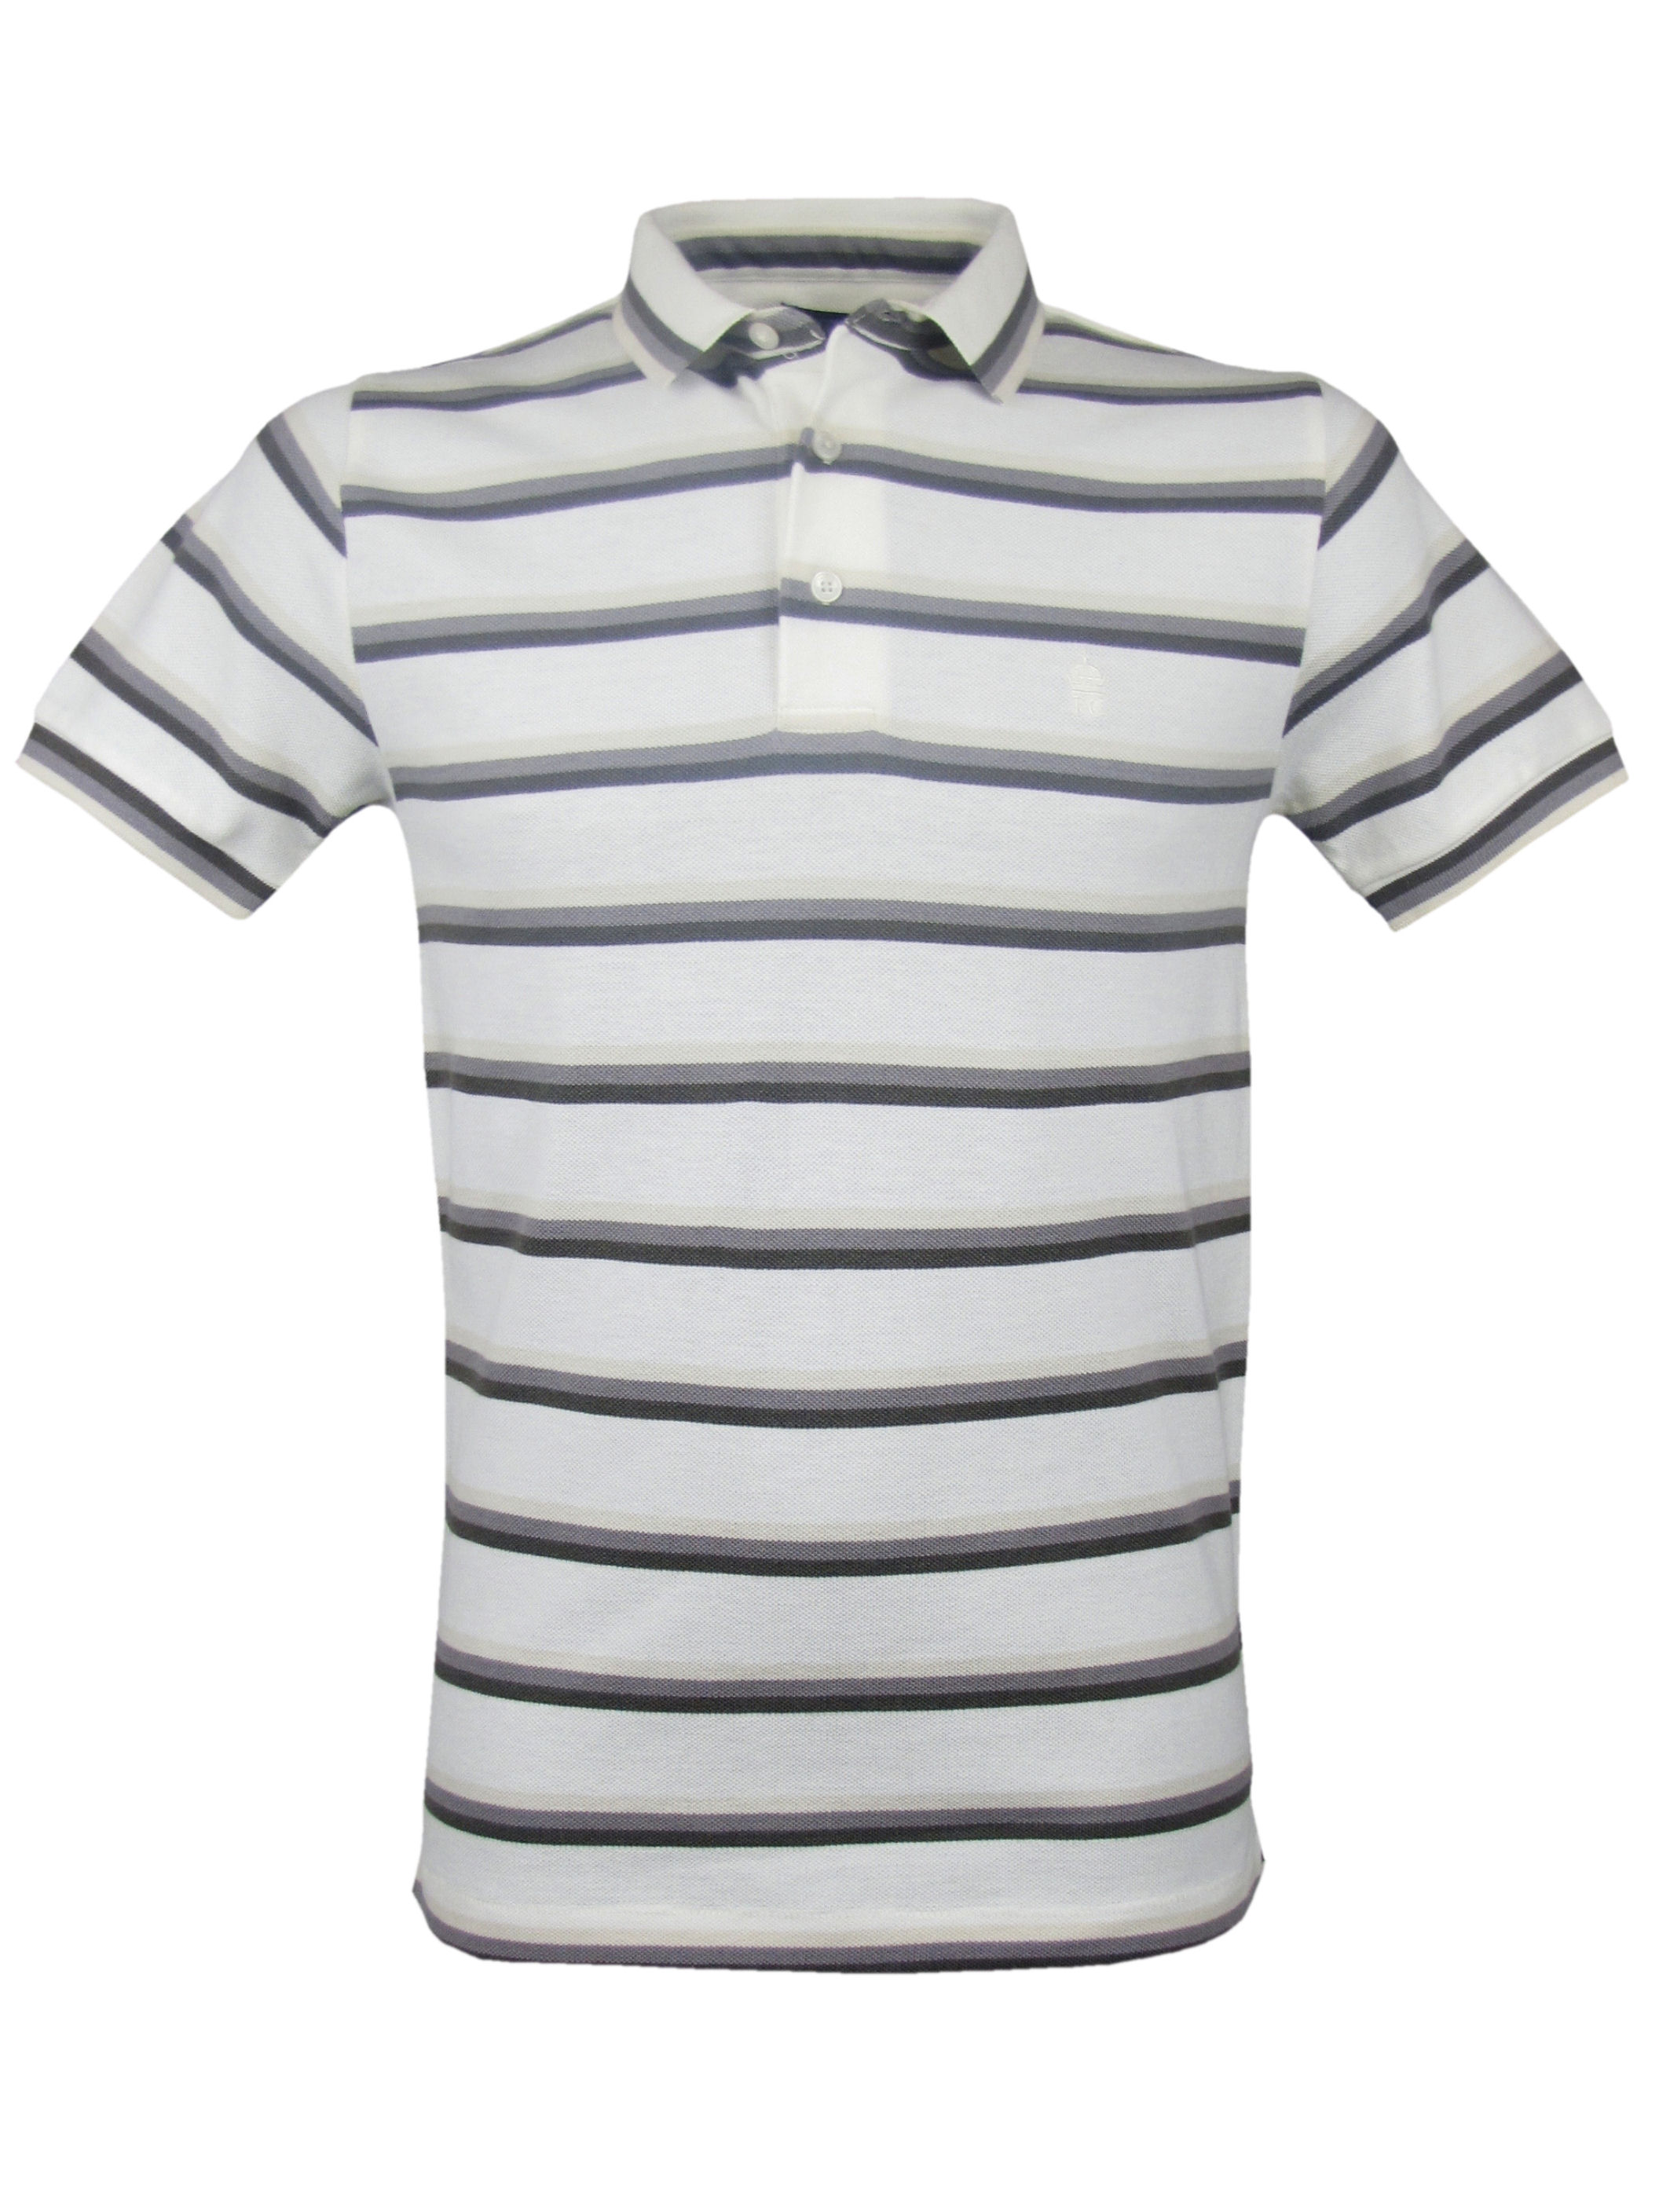 mens fcuk french connection cream striped polo t shirt. Black Bedroom Furniture Sets. Home Design Ideas